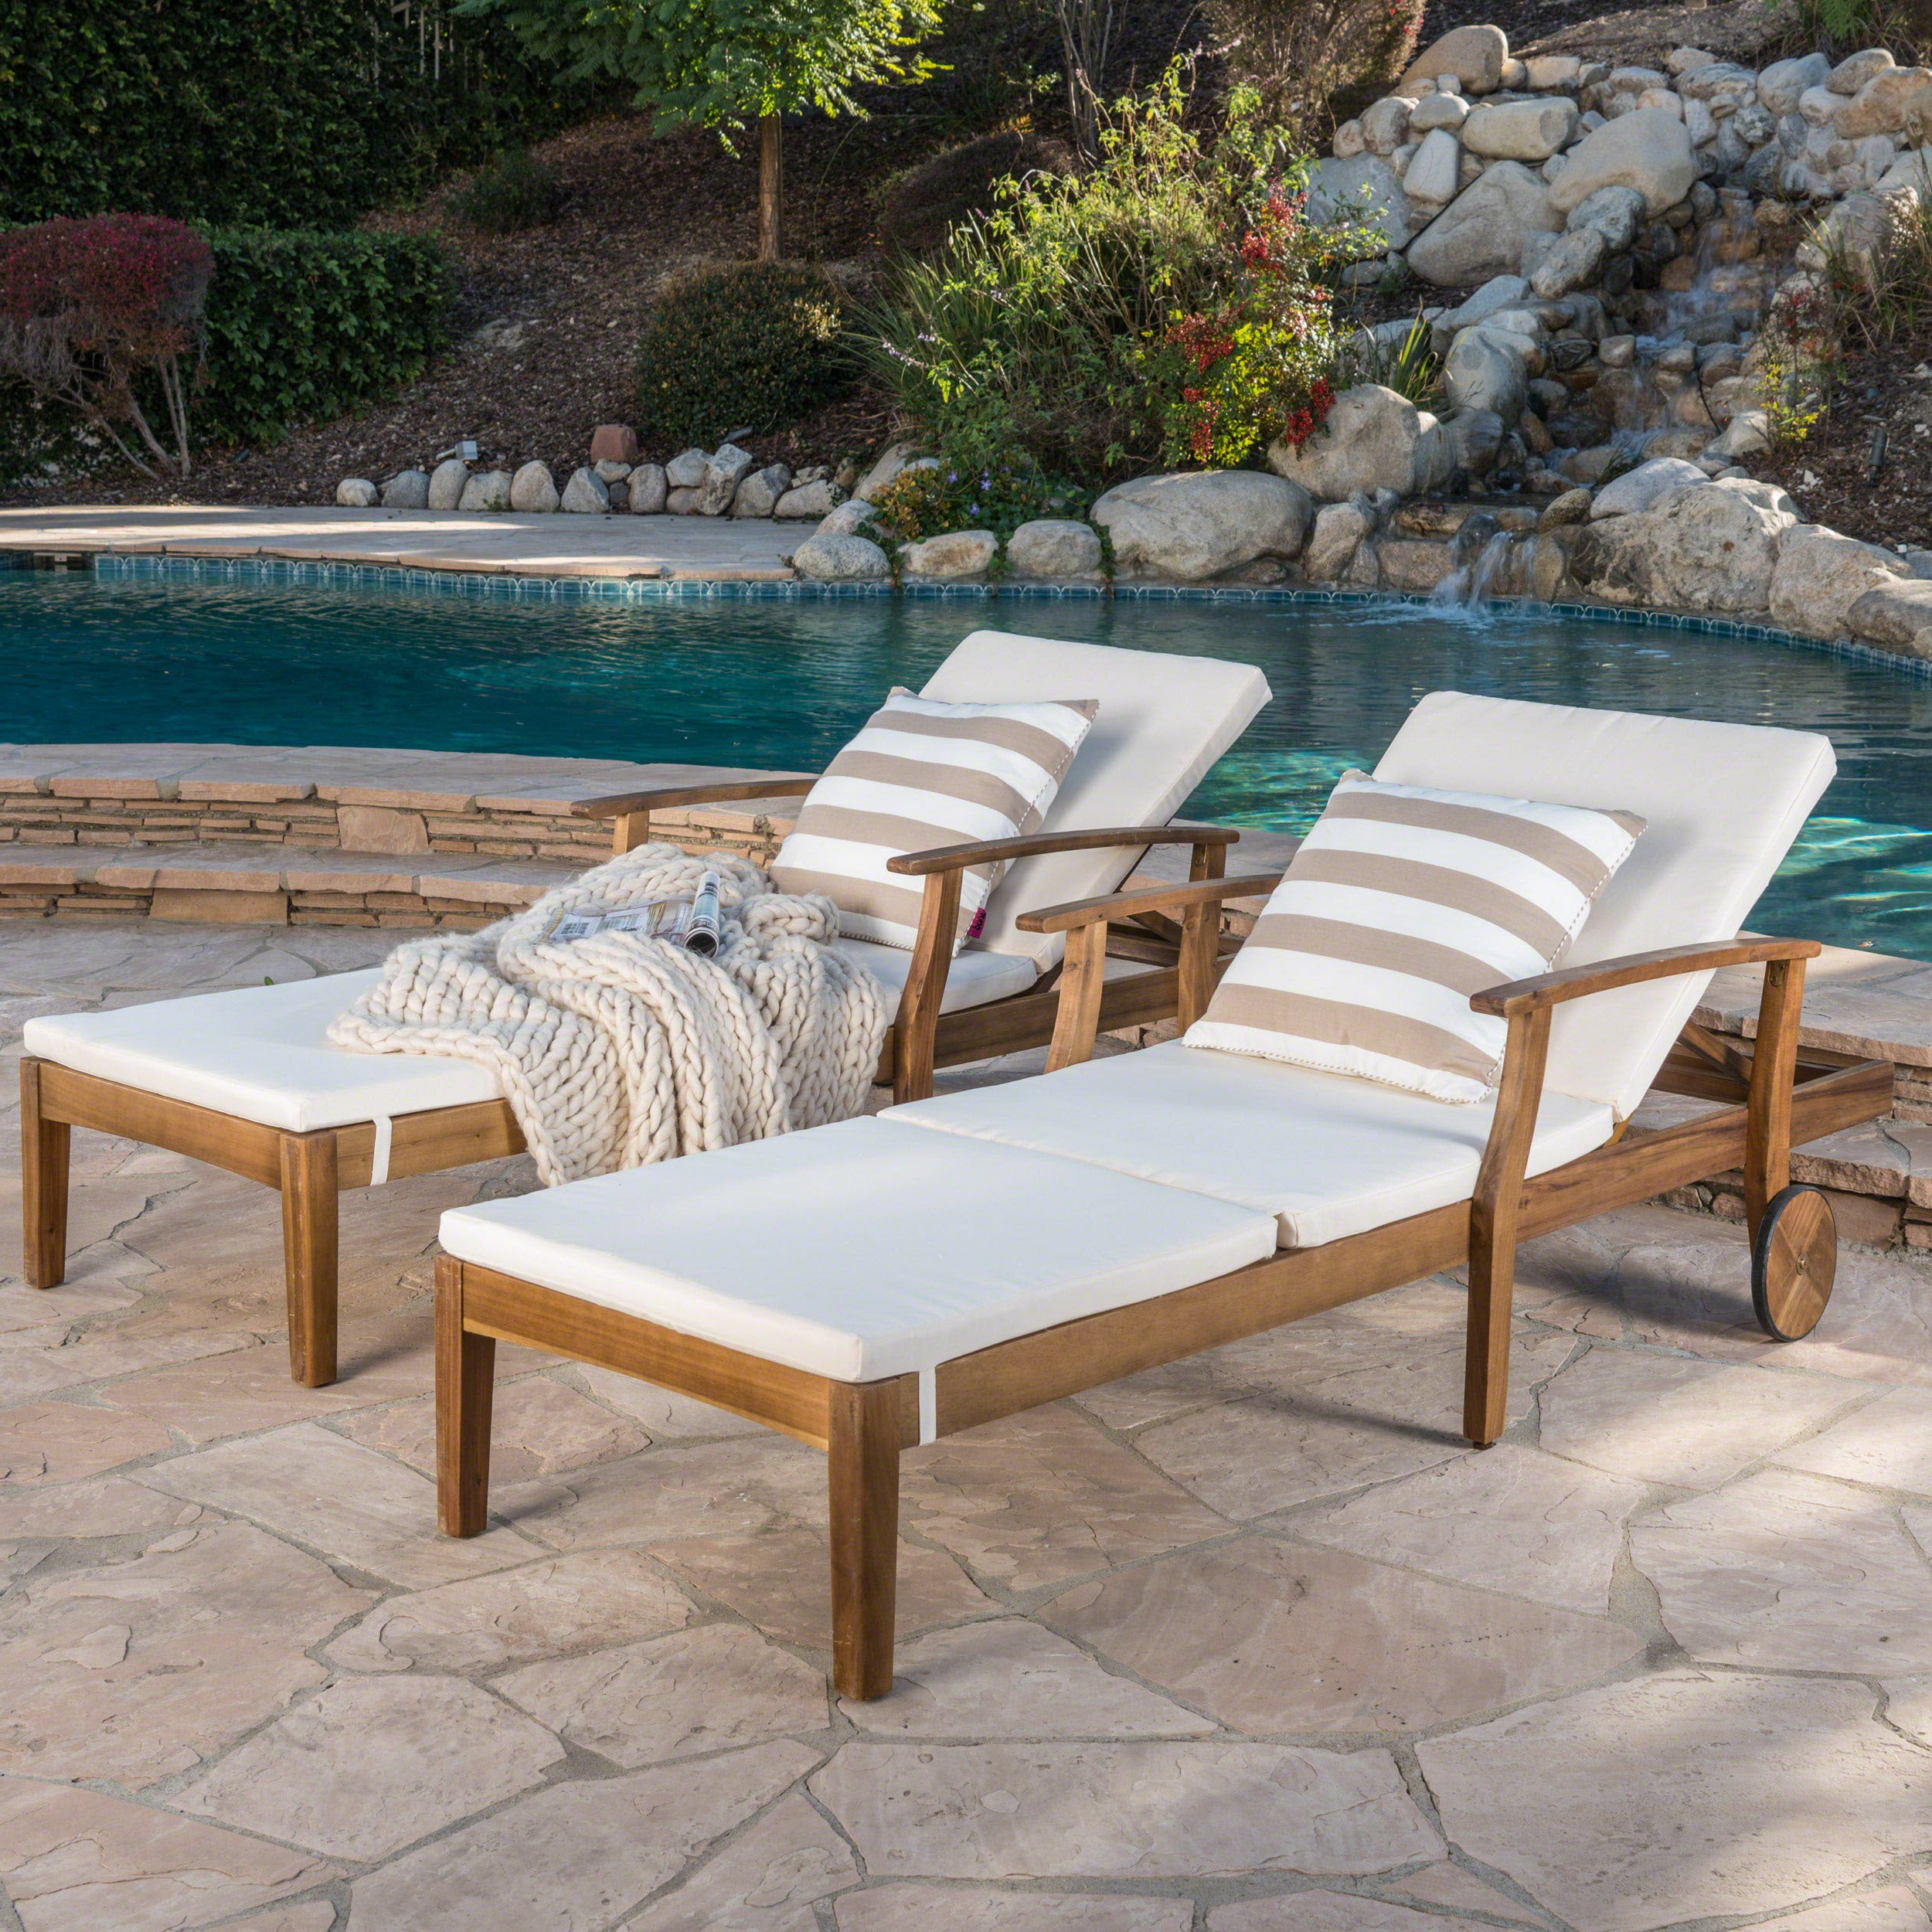 Perla Outdoor Acacia Wood Chaise Lounge With Cushion (set Of 2) Christopher Knight Home Regarding Fashionable Perla Outdoor Acacia Wood Chaise Lounges (View 1 of 25)